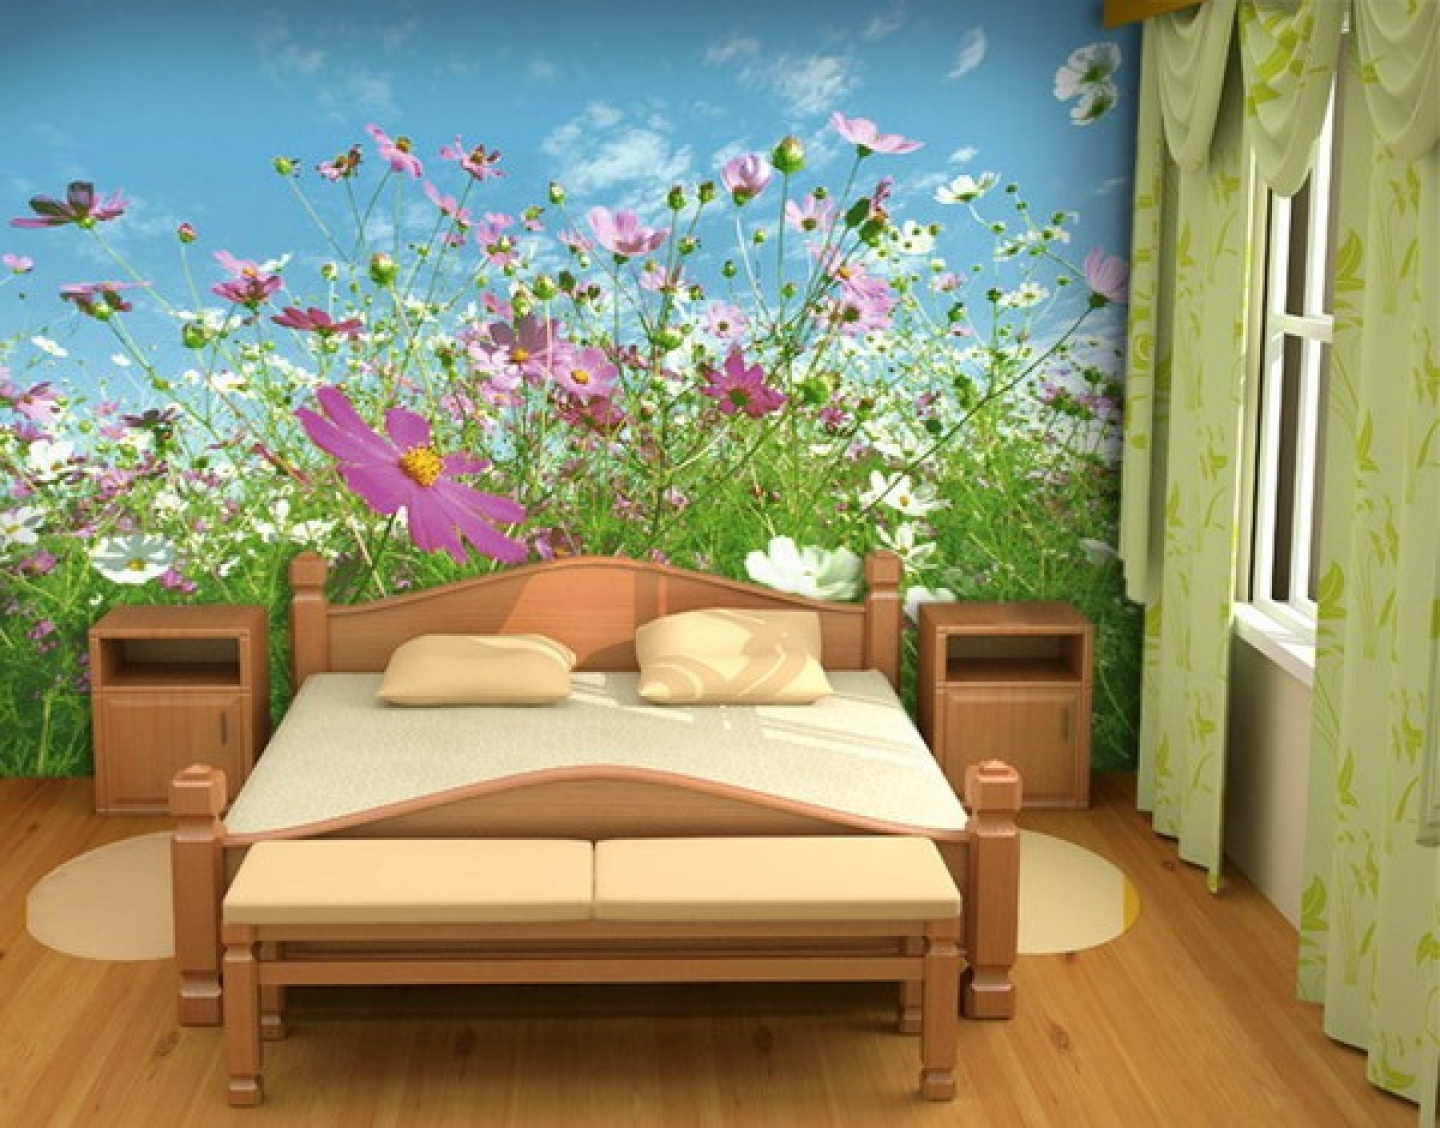 Beautiful Bedroom Wallpaper Designs Ideas ! Home Decor